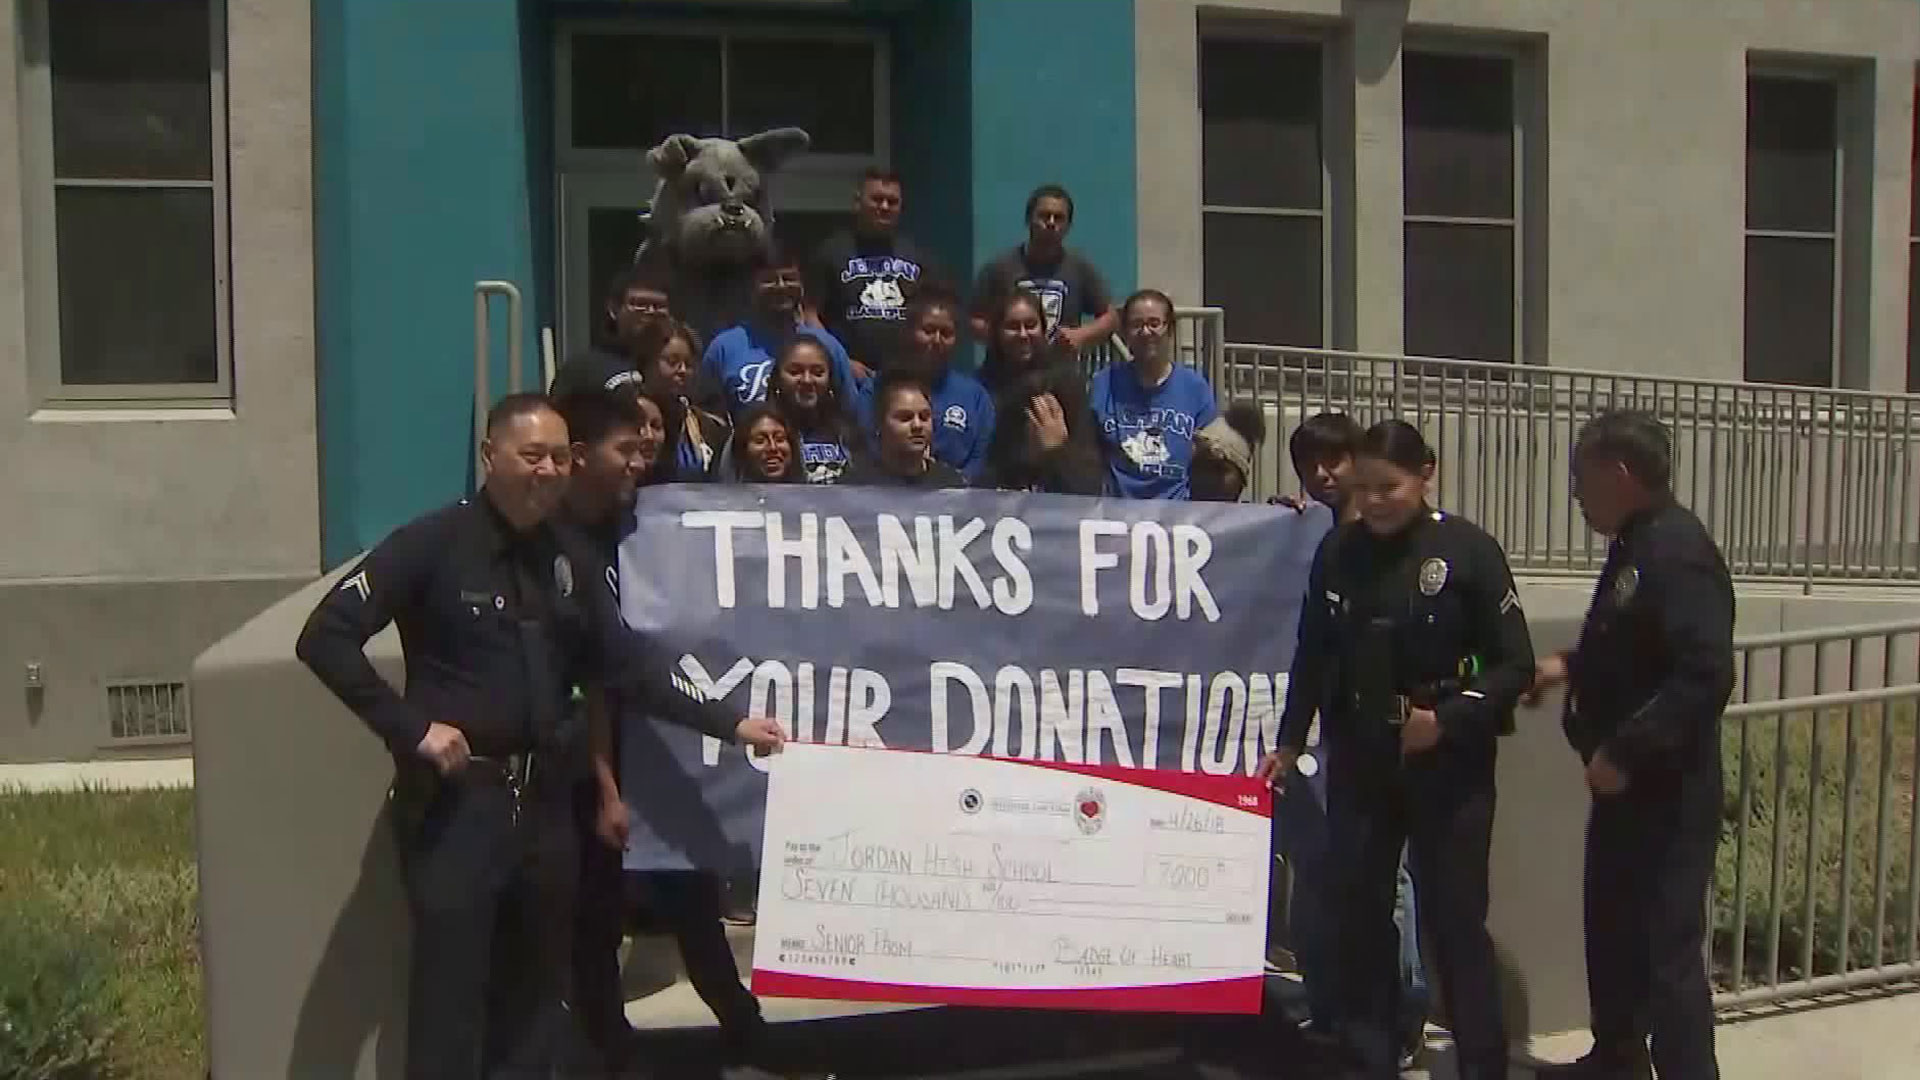 An LAPD event marked a donation from Badge of Heart on April 26, 2018. (Credit: KTLA)